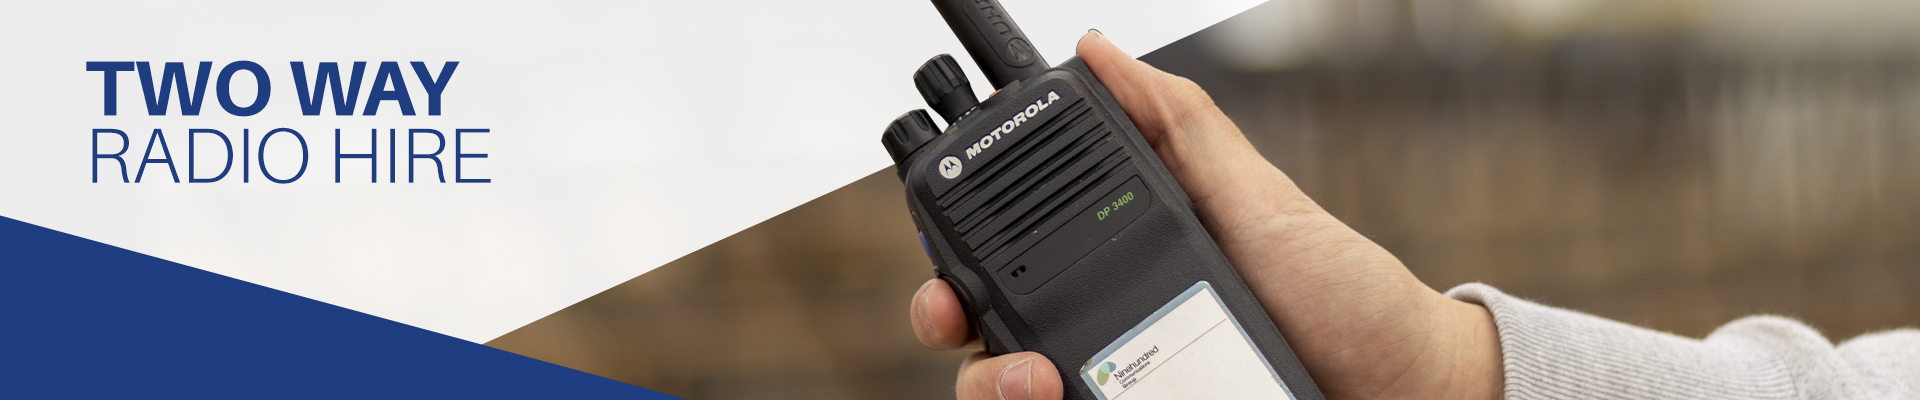 Two Way Radio Hire image